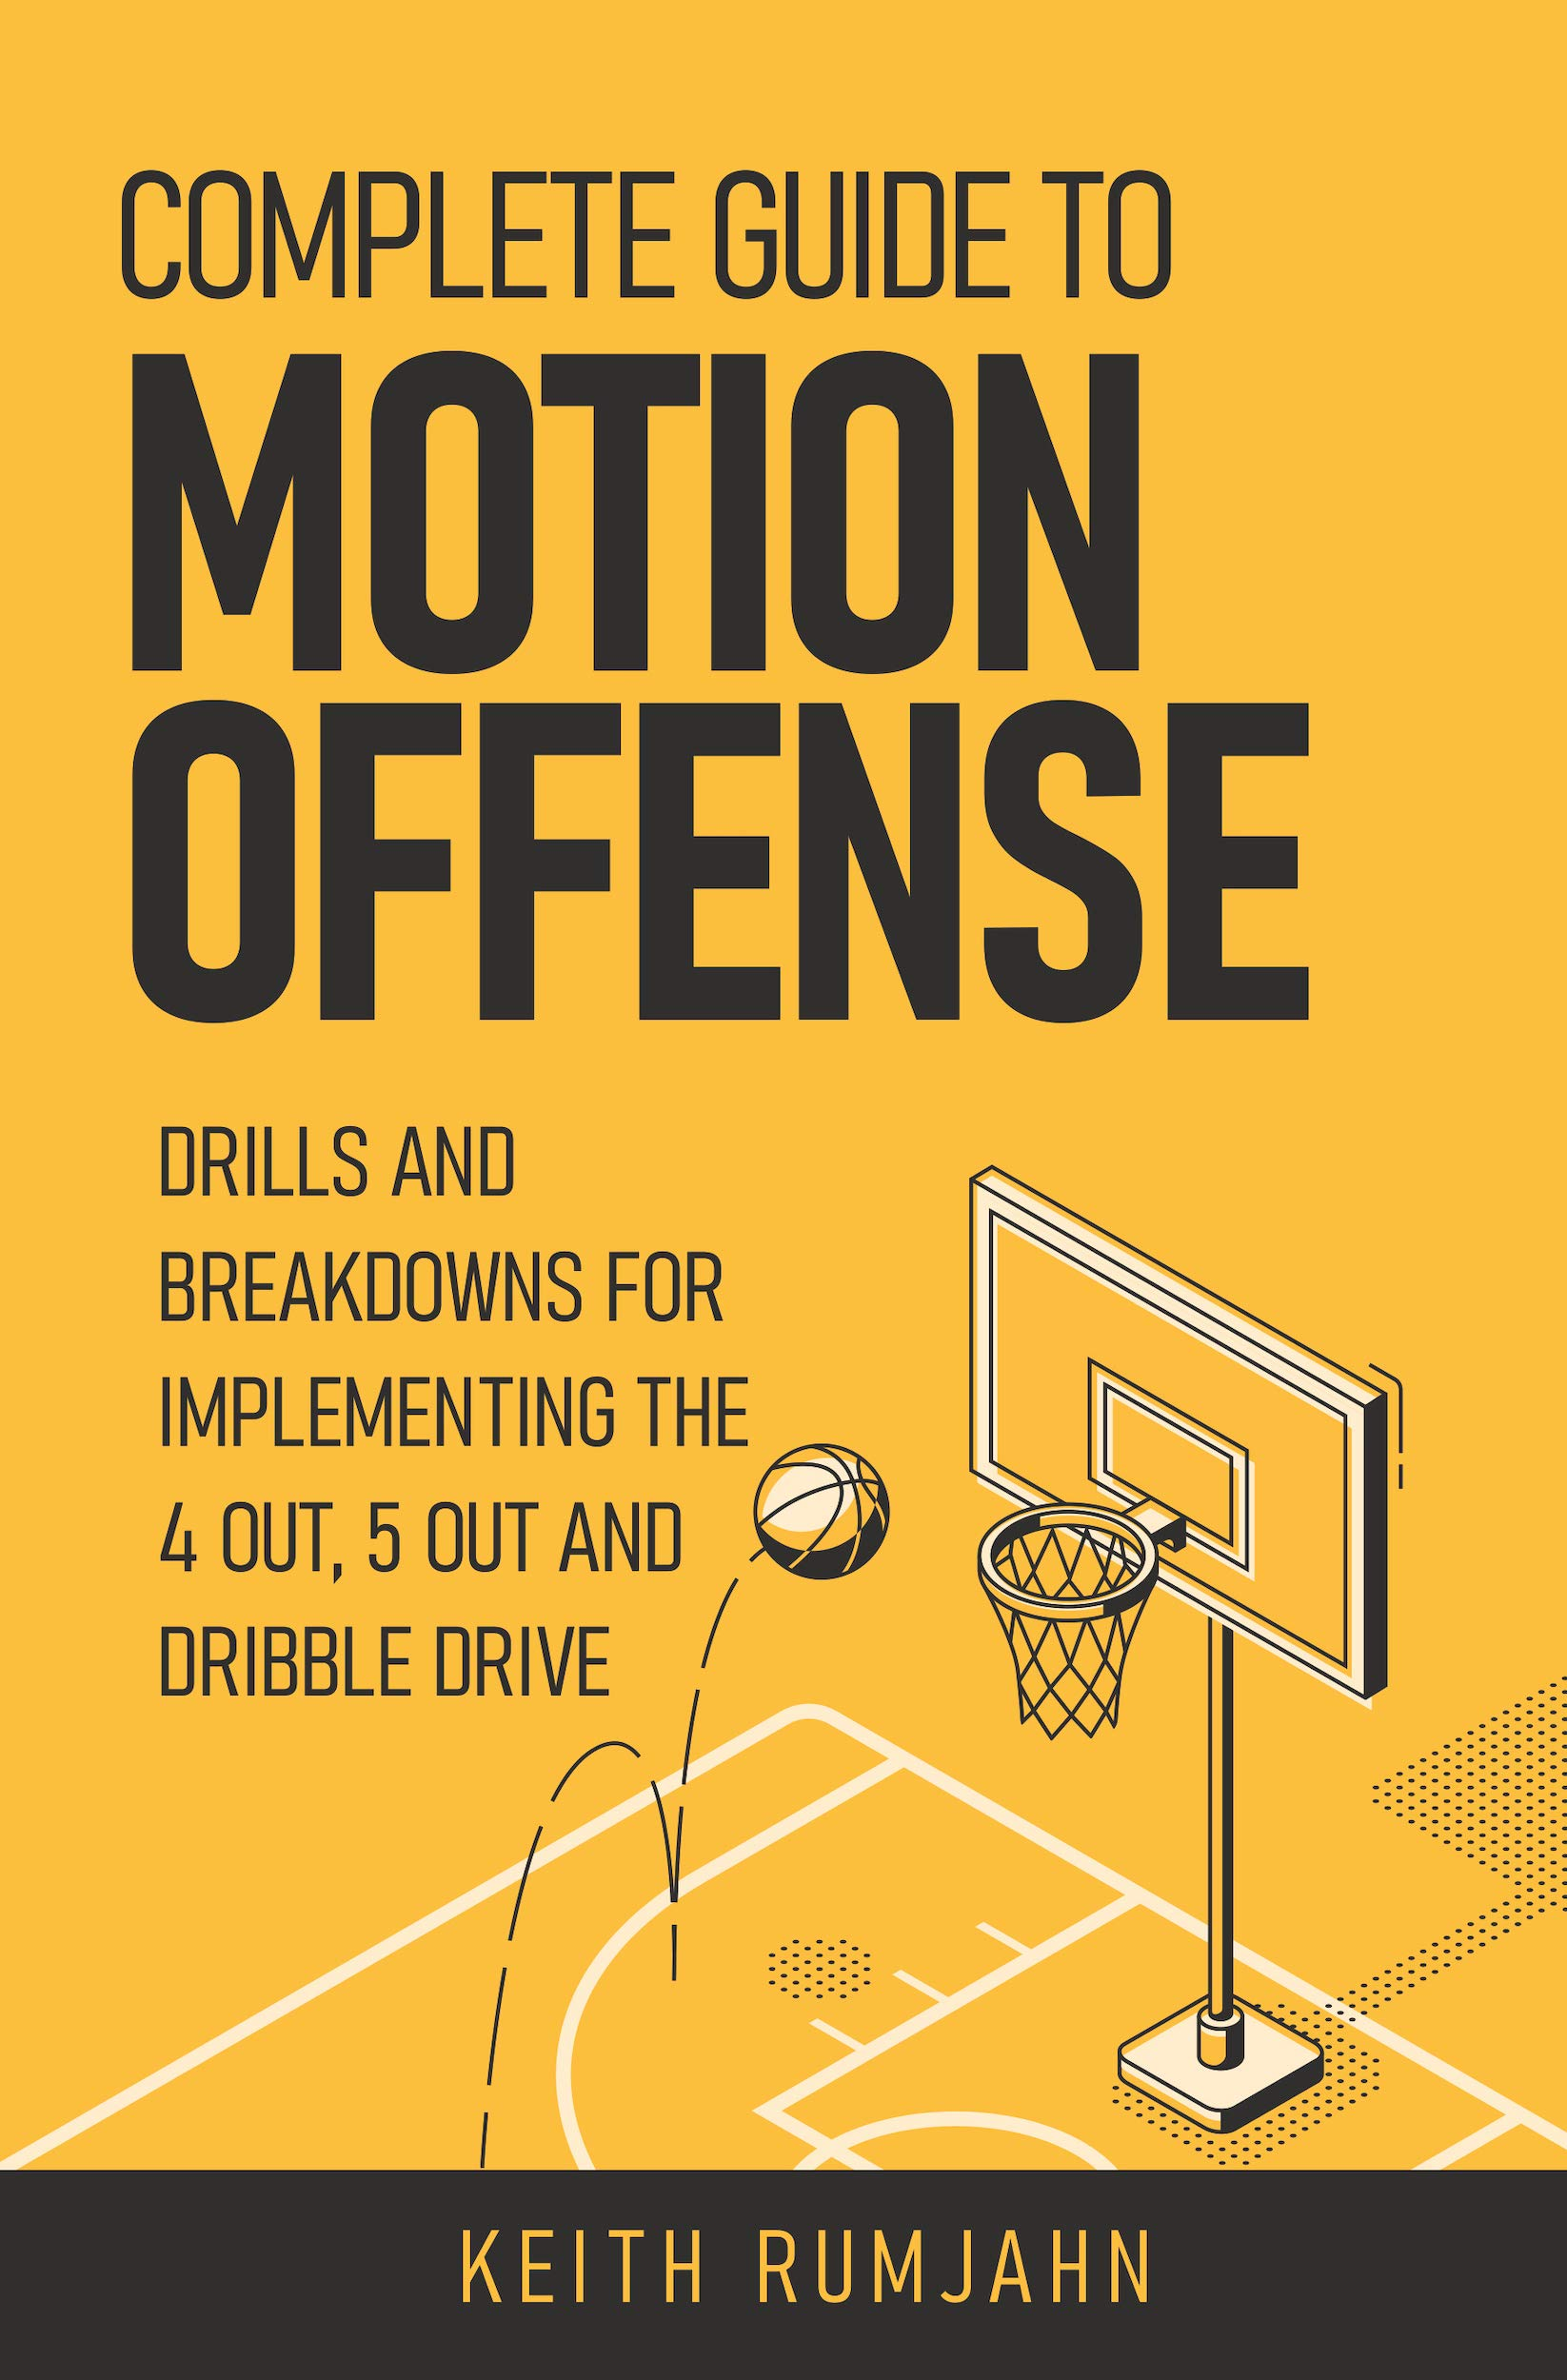 Complete Guide To Motion Offense: Implementing The 5 Out, 4 Out Or Dribble Drive. (English Edition)